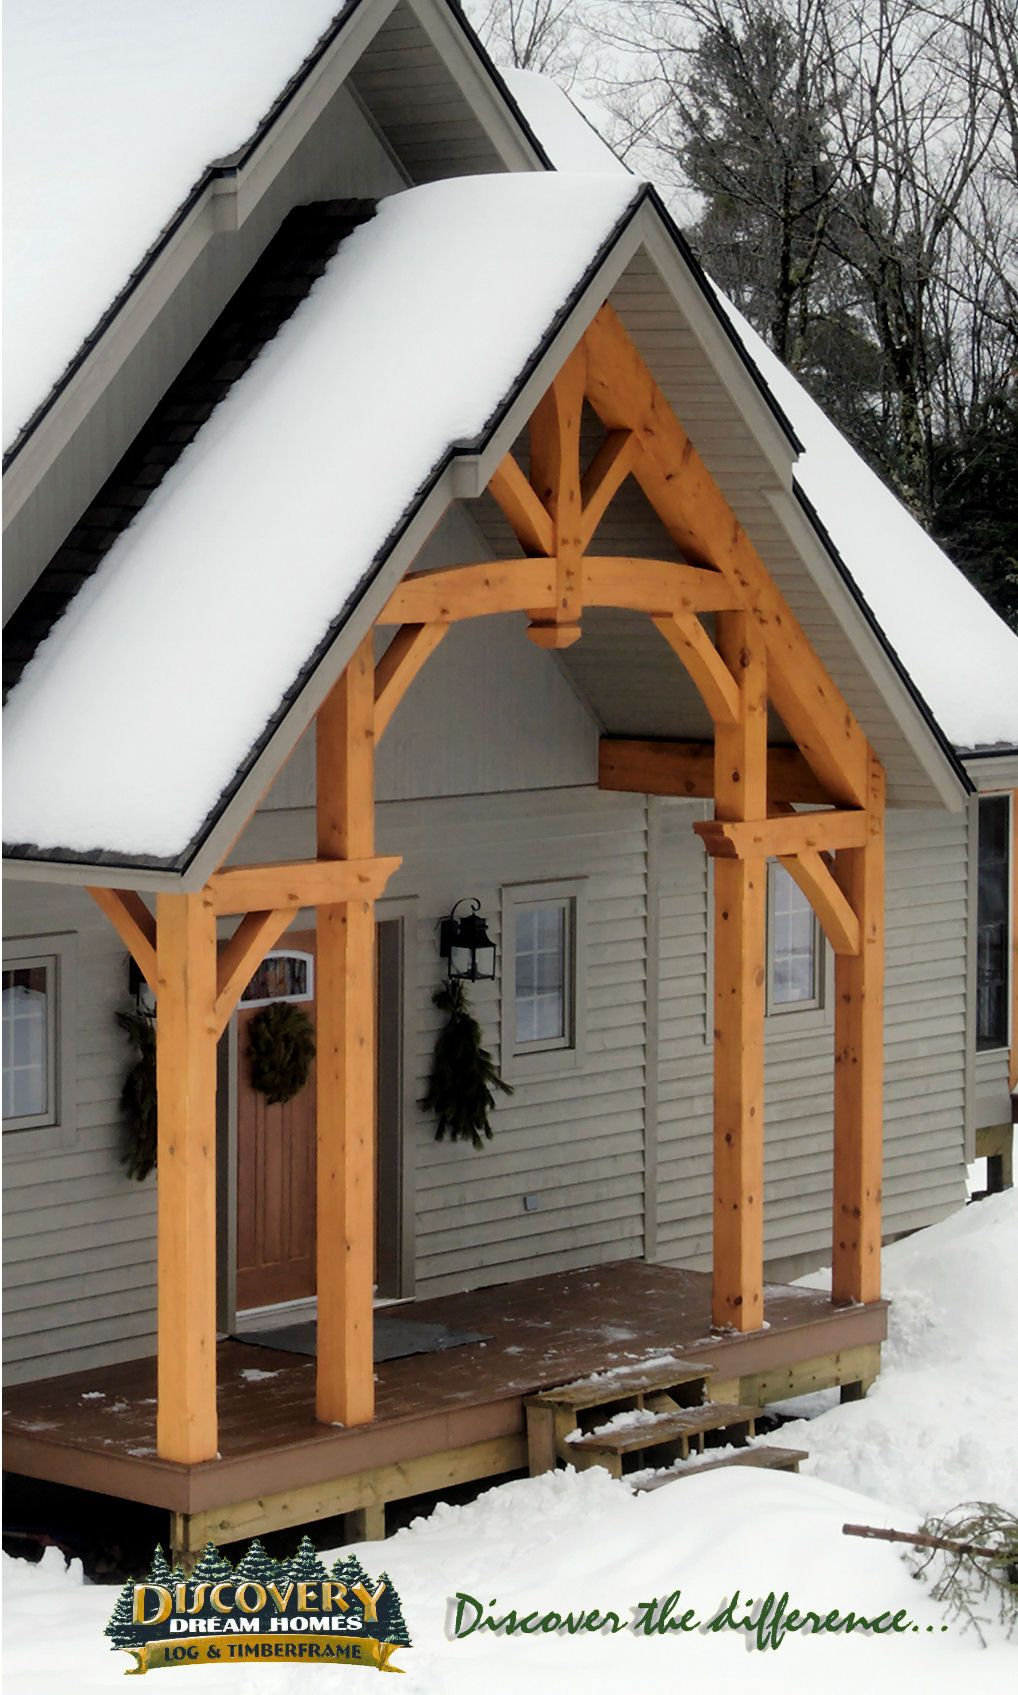 Timber Frame Accent Entryway #TimberFrame #Log #Custom #Accent #DiscoveryDreamHomes